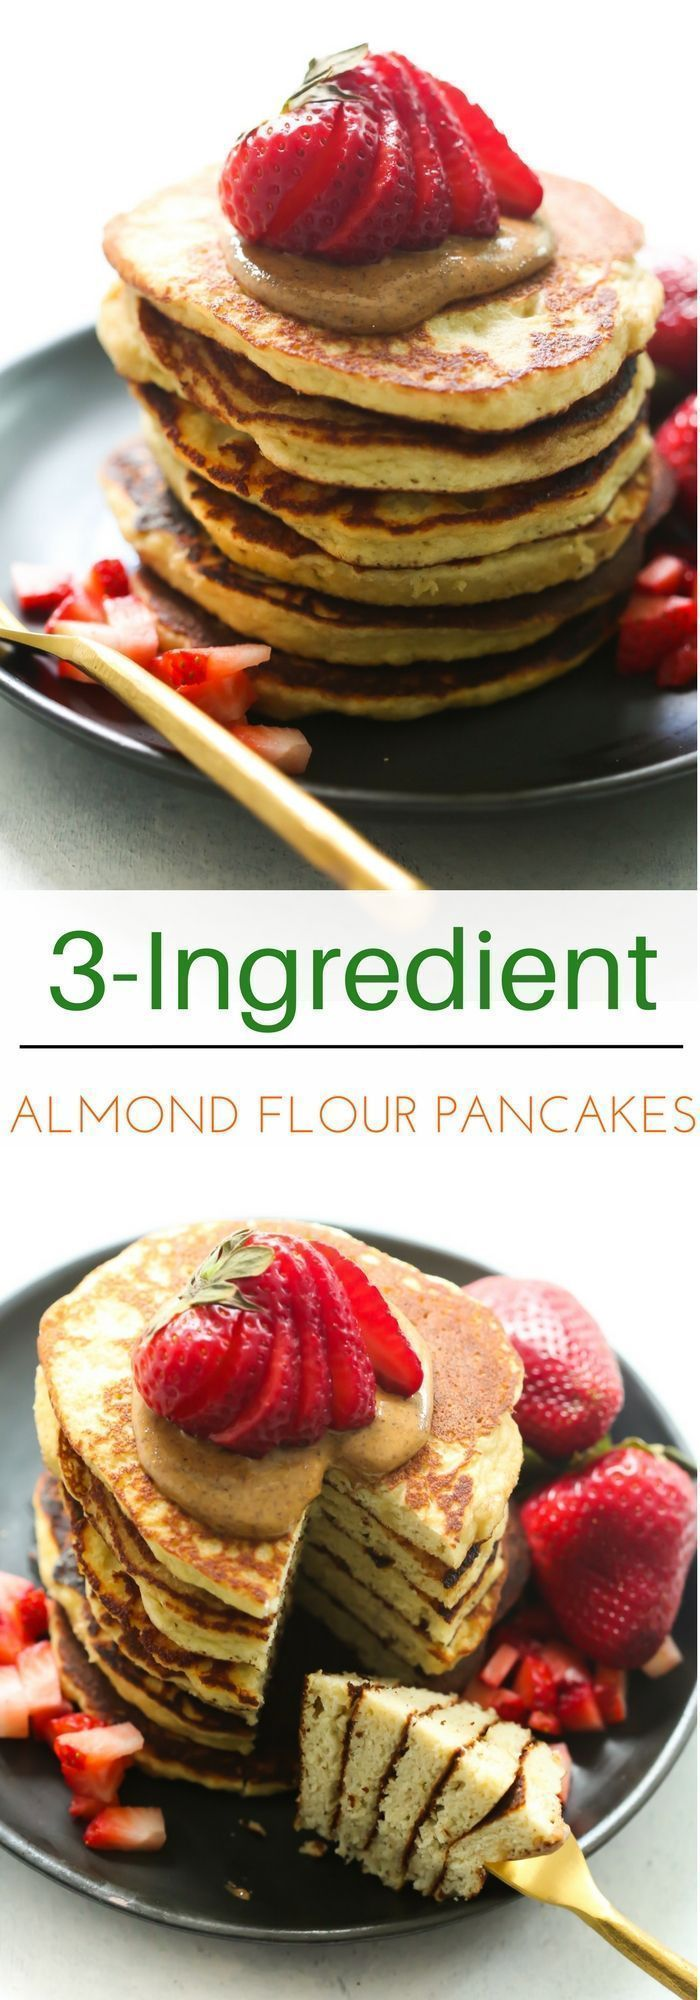 Almond Flour Pancakes - Blender - Ideas of Blender - These 3-ingredient Almond Flour Pancake Recipe is made in a blender packed with protein and its gluten/sugar-free! Delicious and easy to make!3-Ingredient Almond Flour Pancakes - Blender - Ideas of Blender - These 3-ingredient Almond Flour Pancake Recipe is made in a blender p...